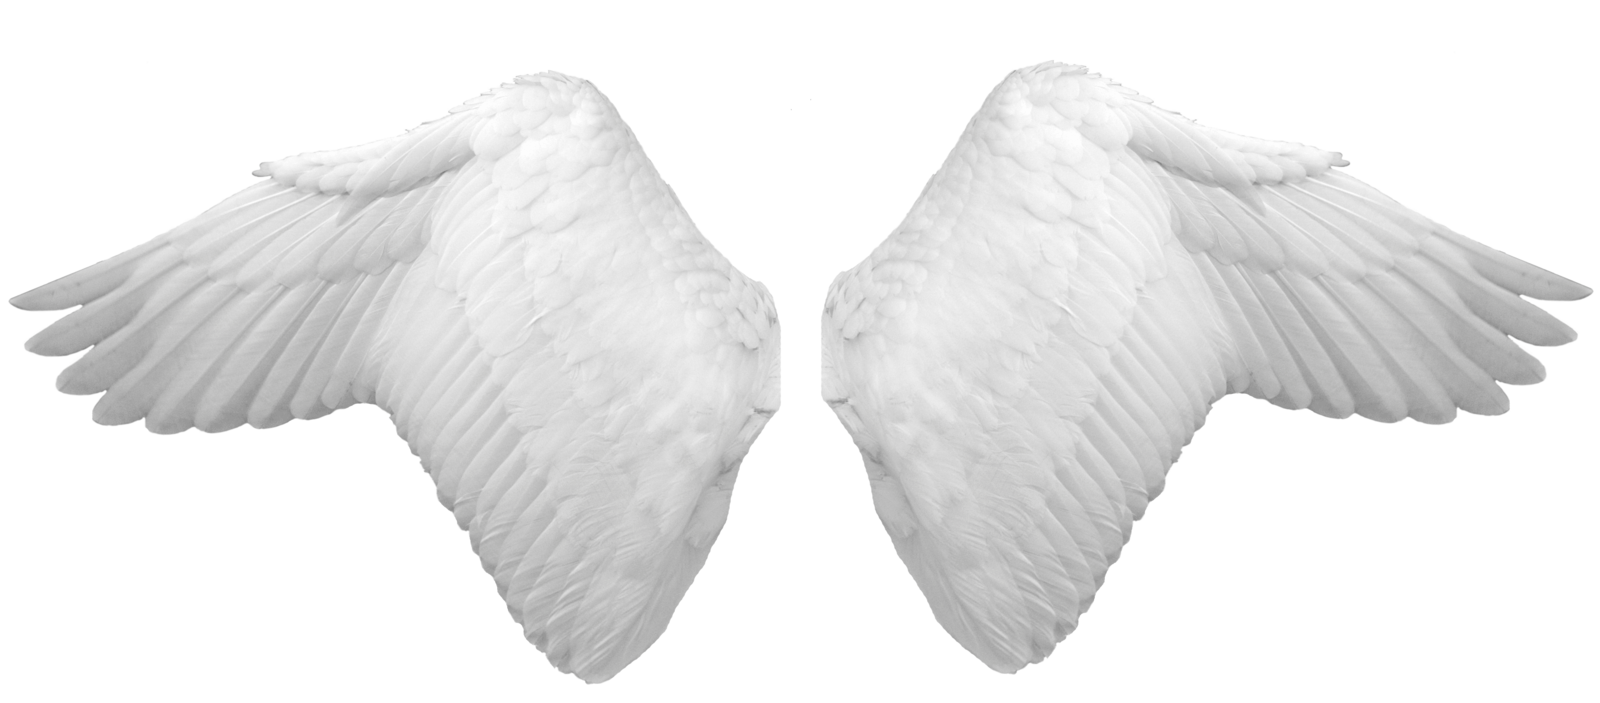 White angel wings png. Image purepng free transparent